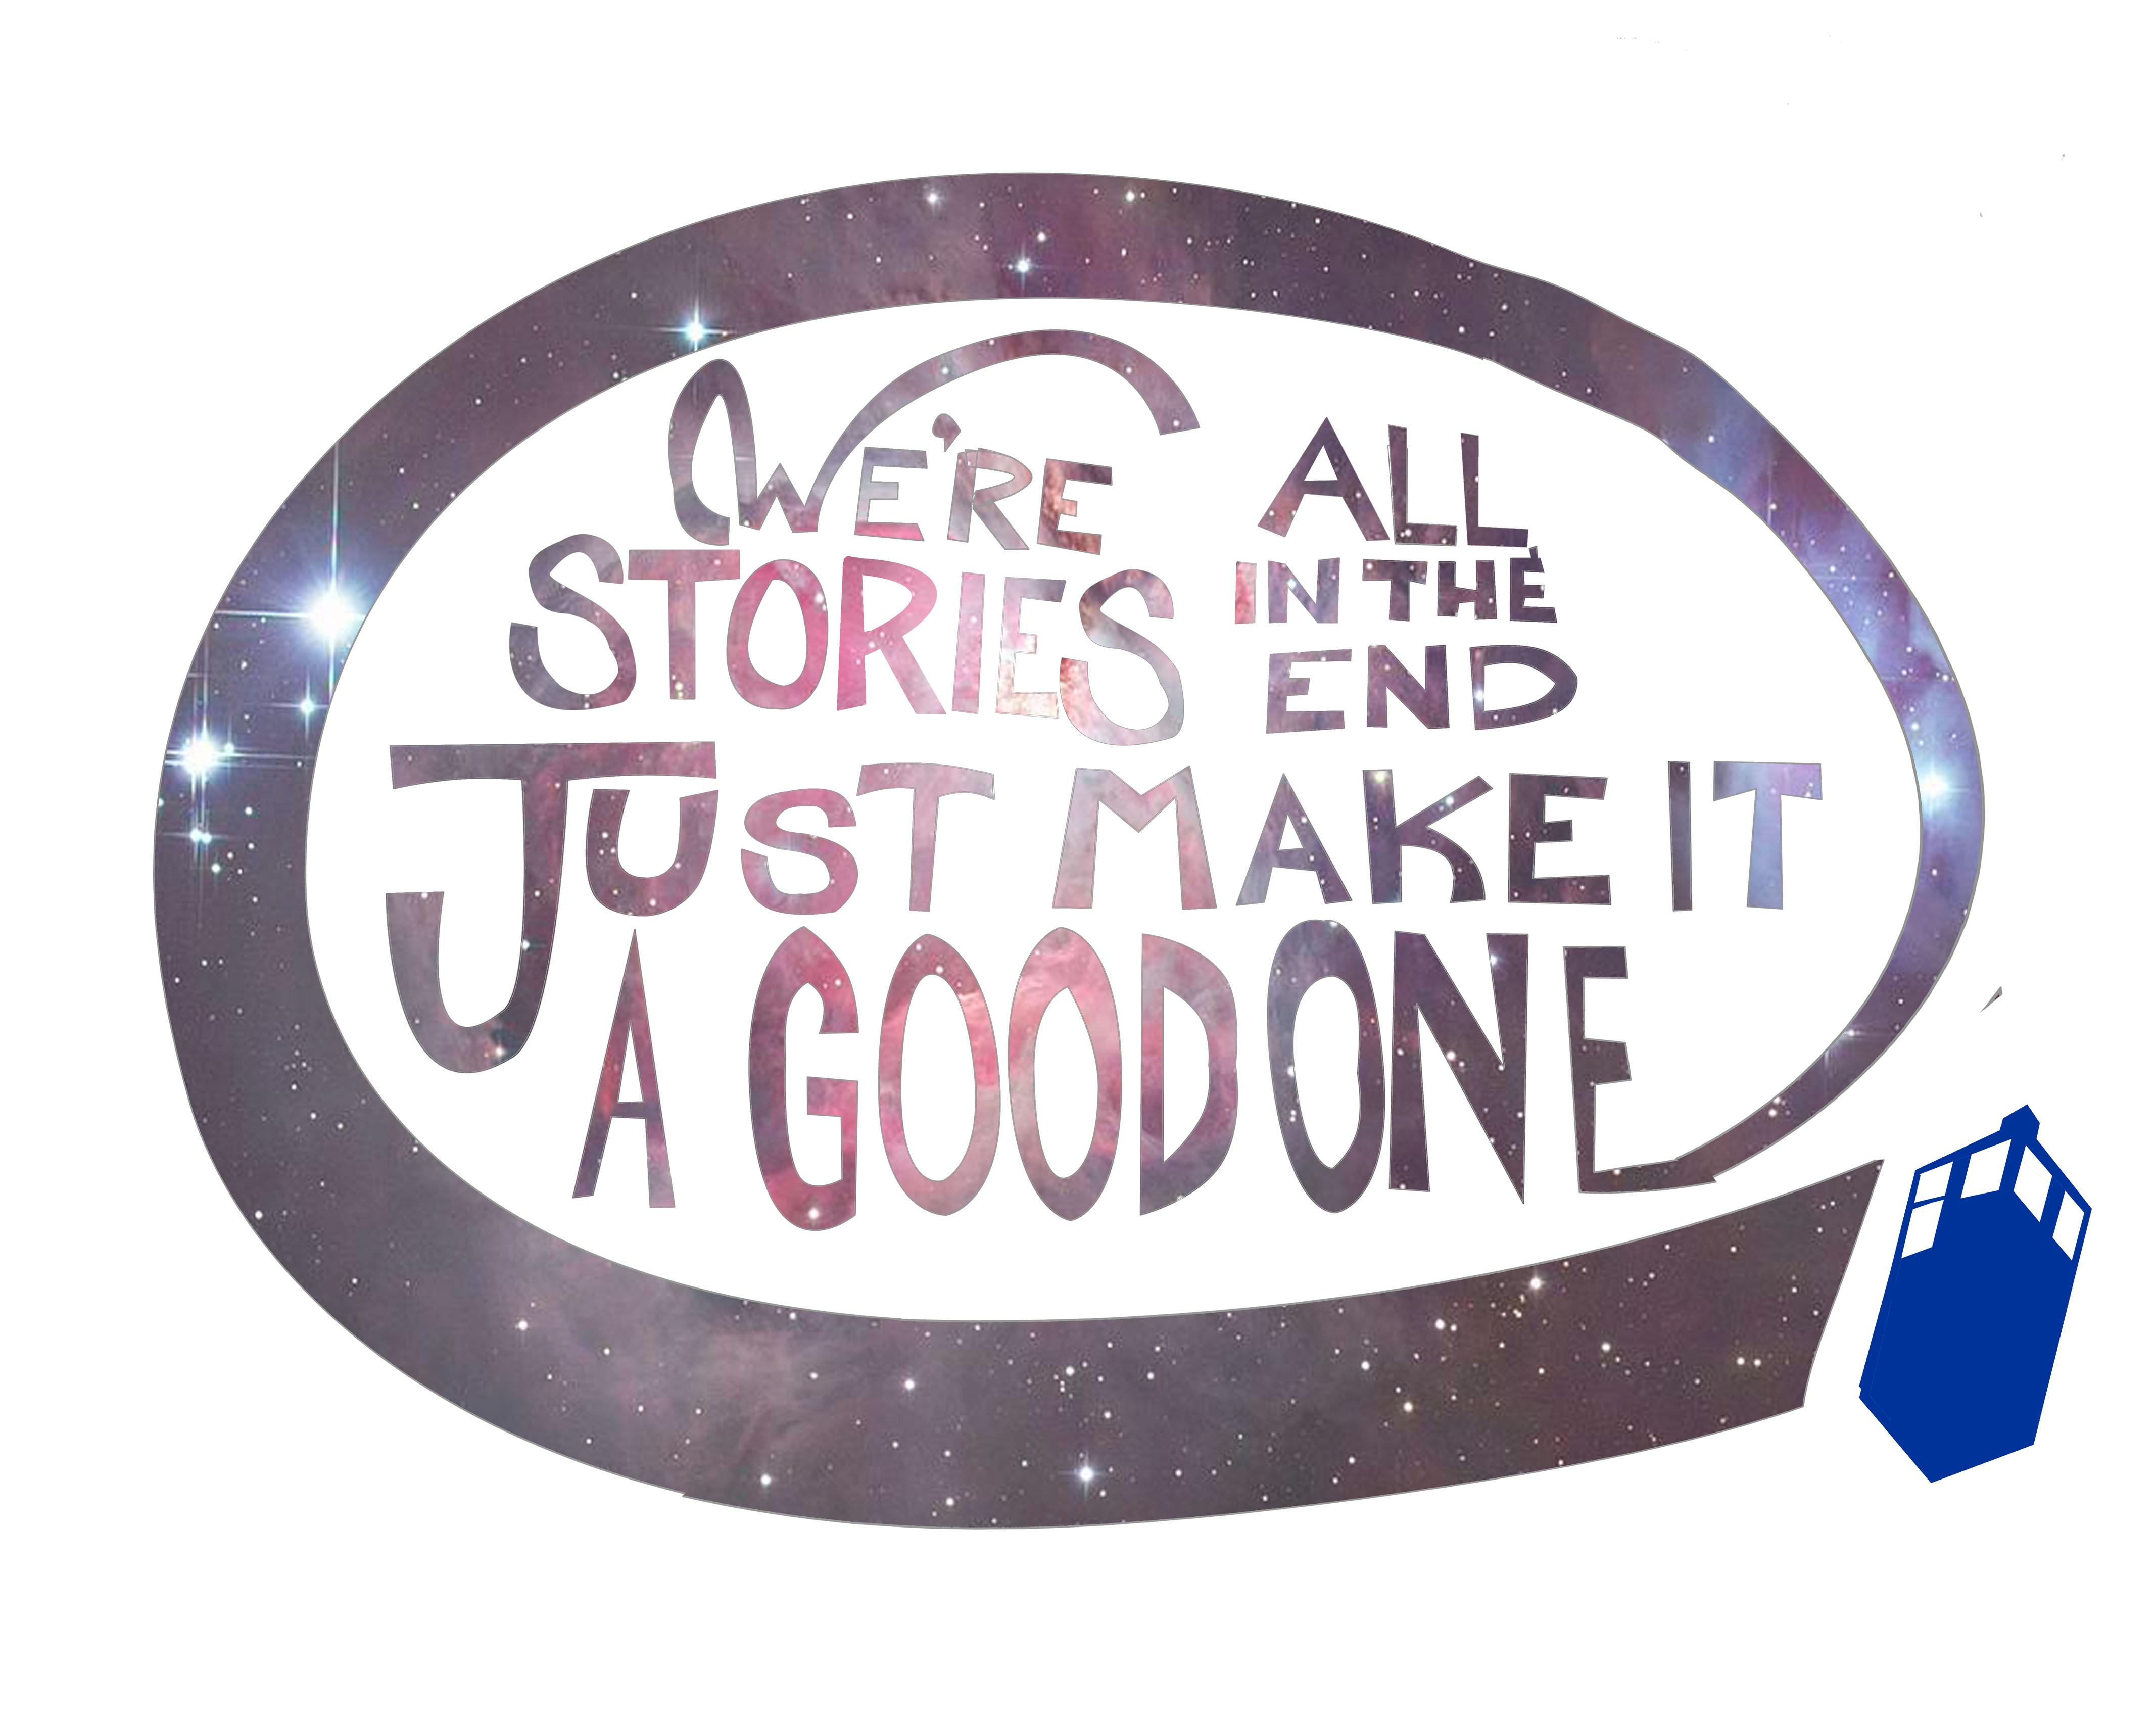 We're all stories in the end. Make it a good one eh? - image 8 - student project